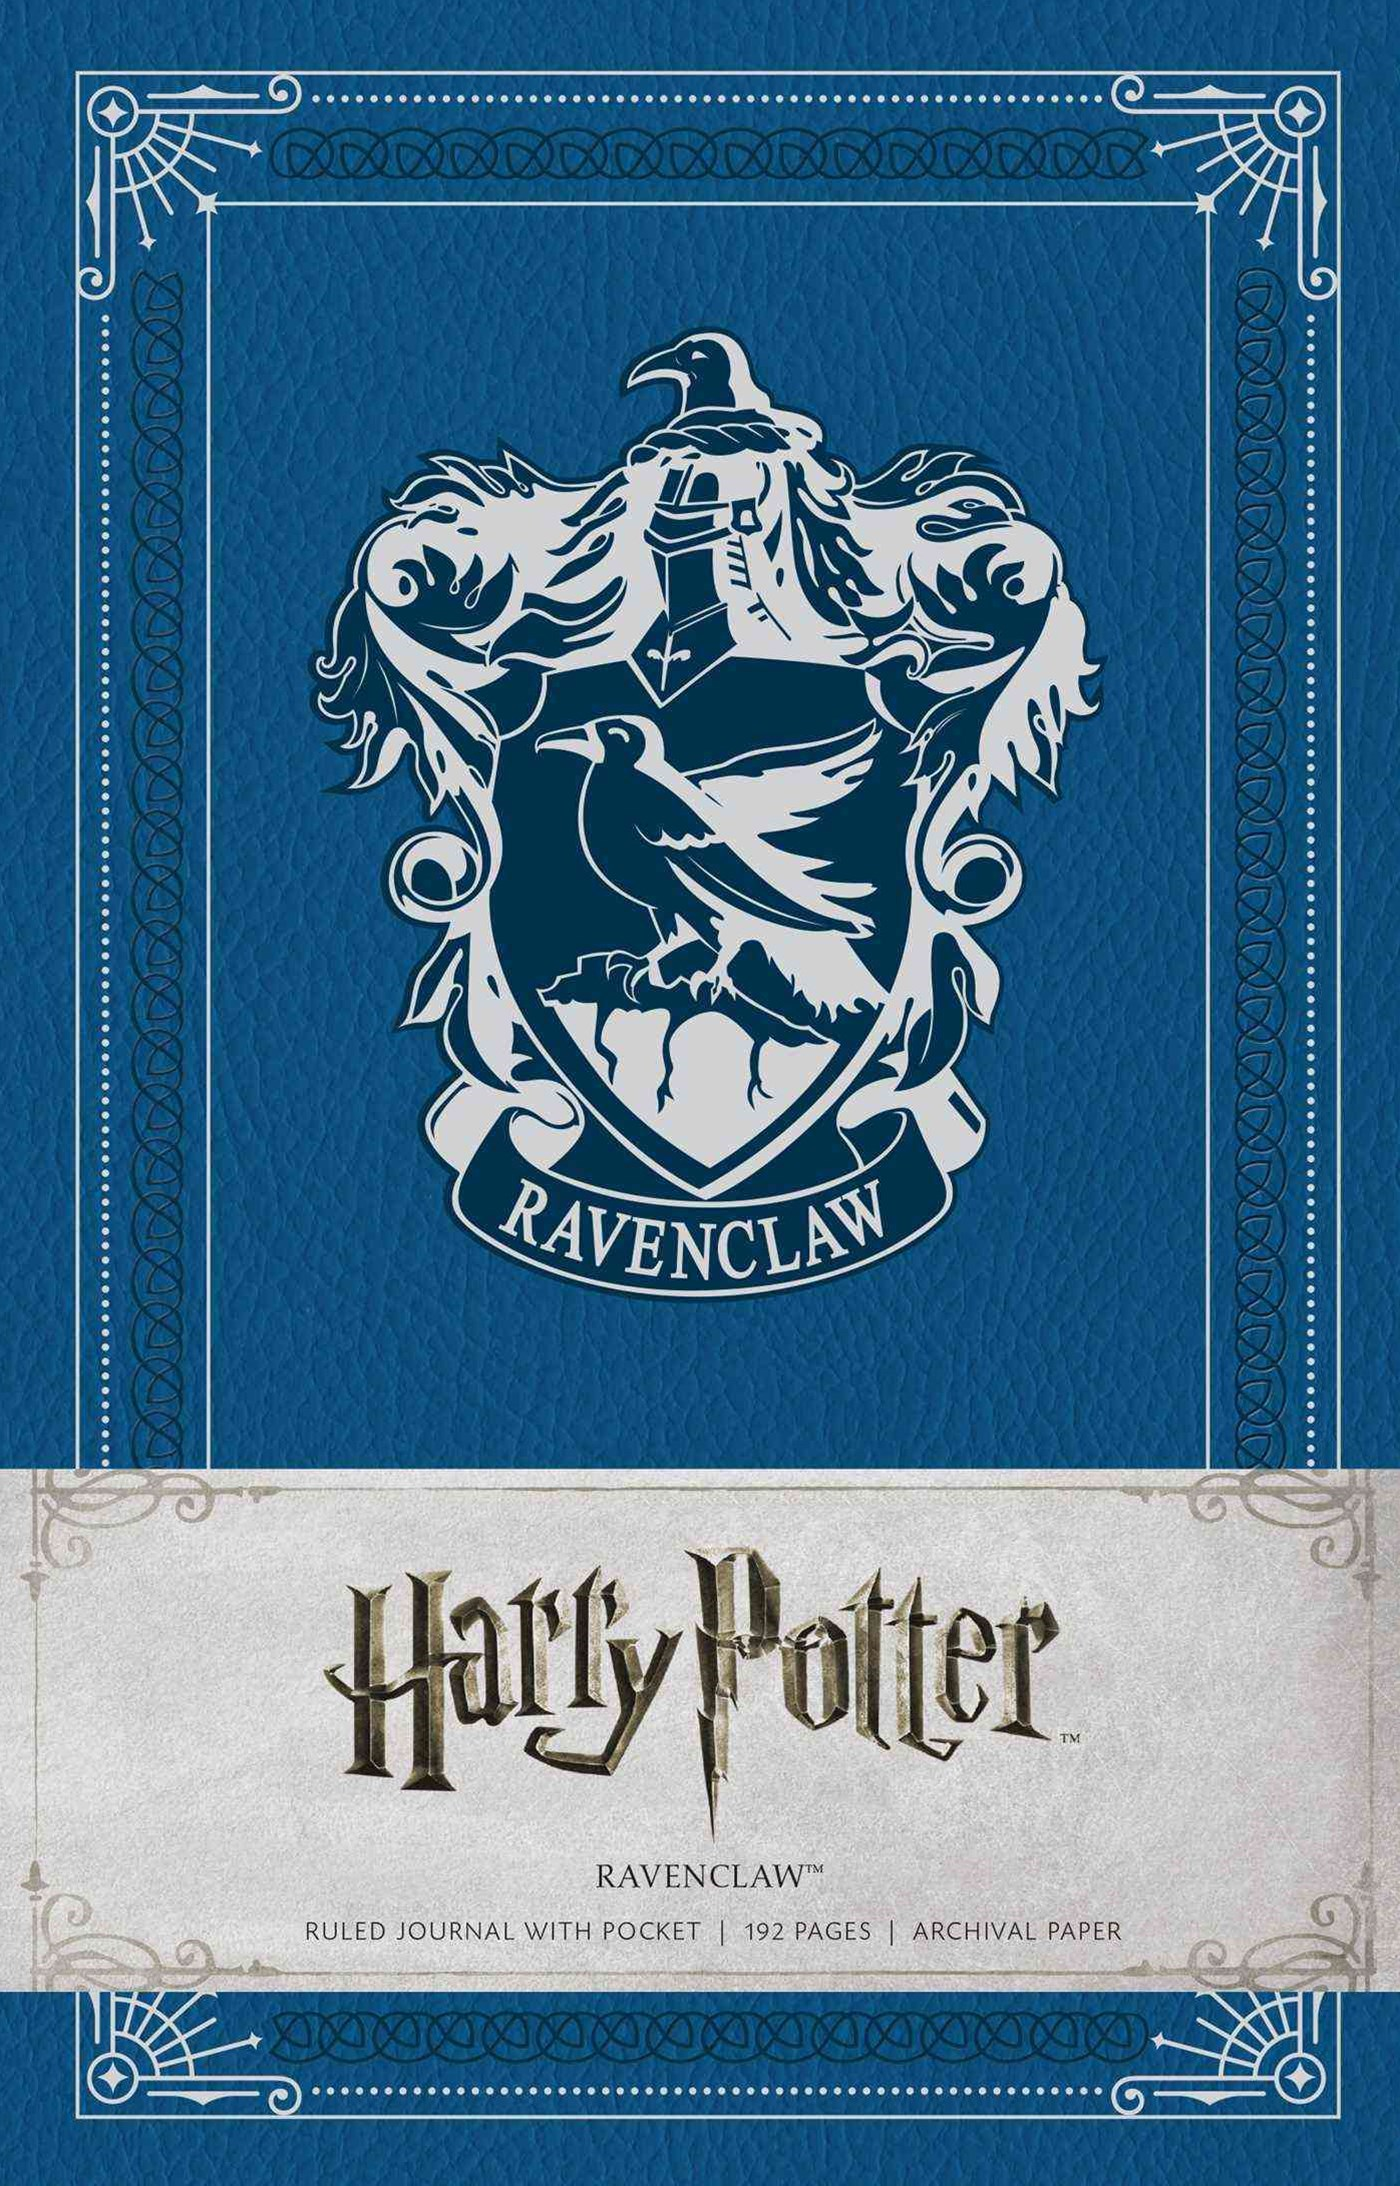 Harry Potter: Ravenclaw Hardcover Ruled